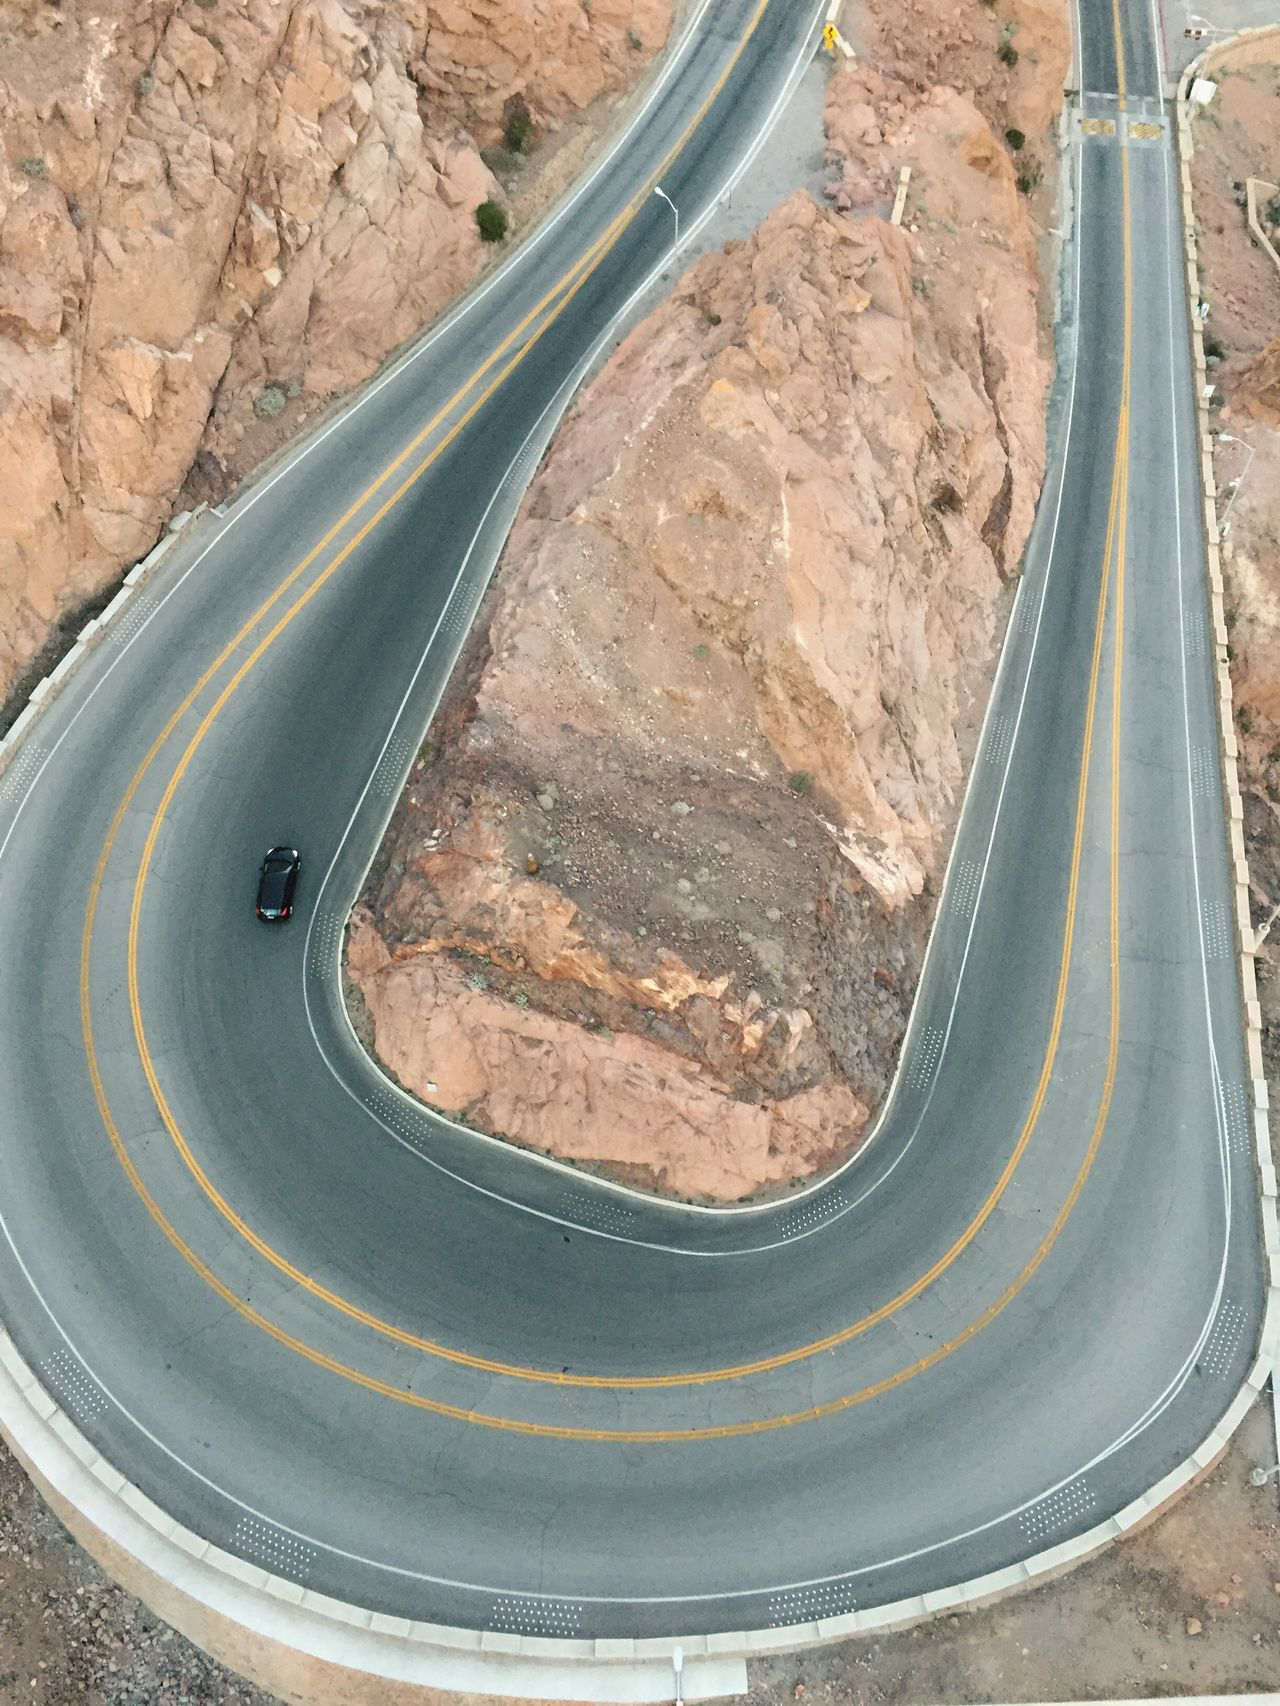 Close-up Outdoors Rocky Curve Mountain Roads Driving Road Trip Winding Roads One One Car Sharp Turn Hoover Dam Travel